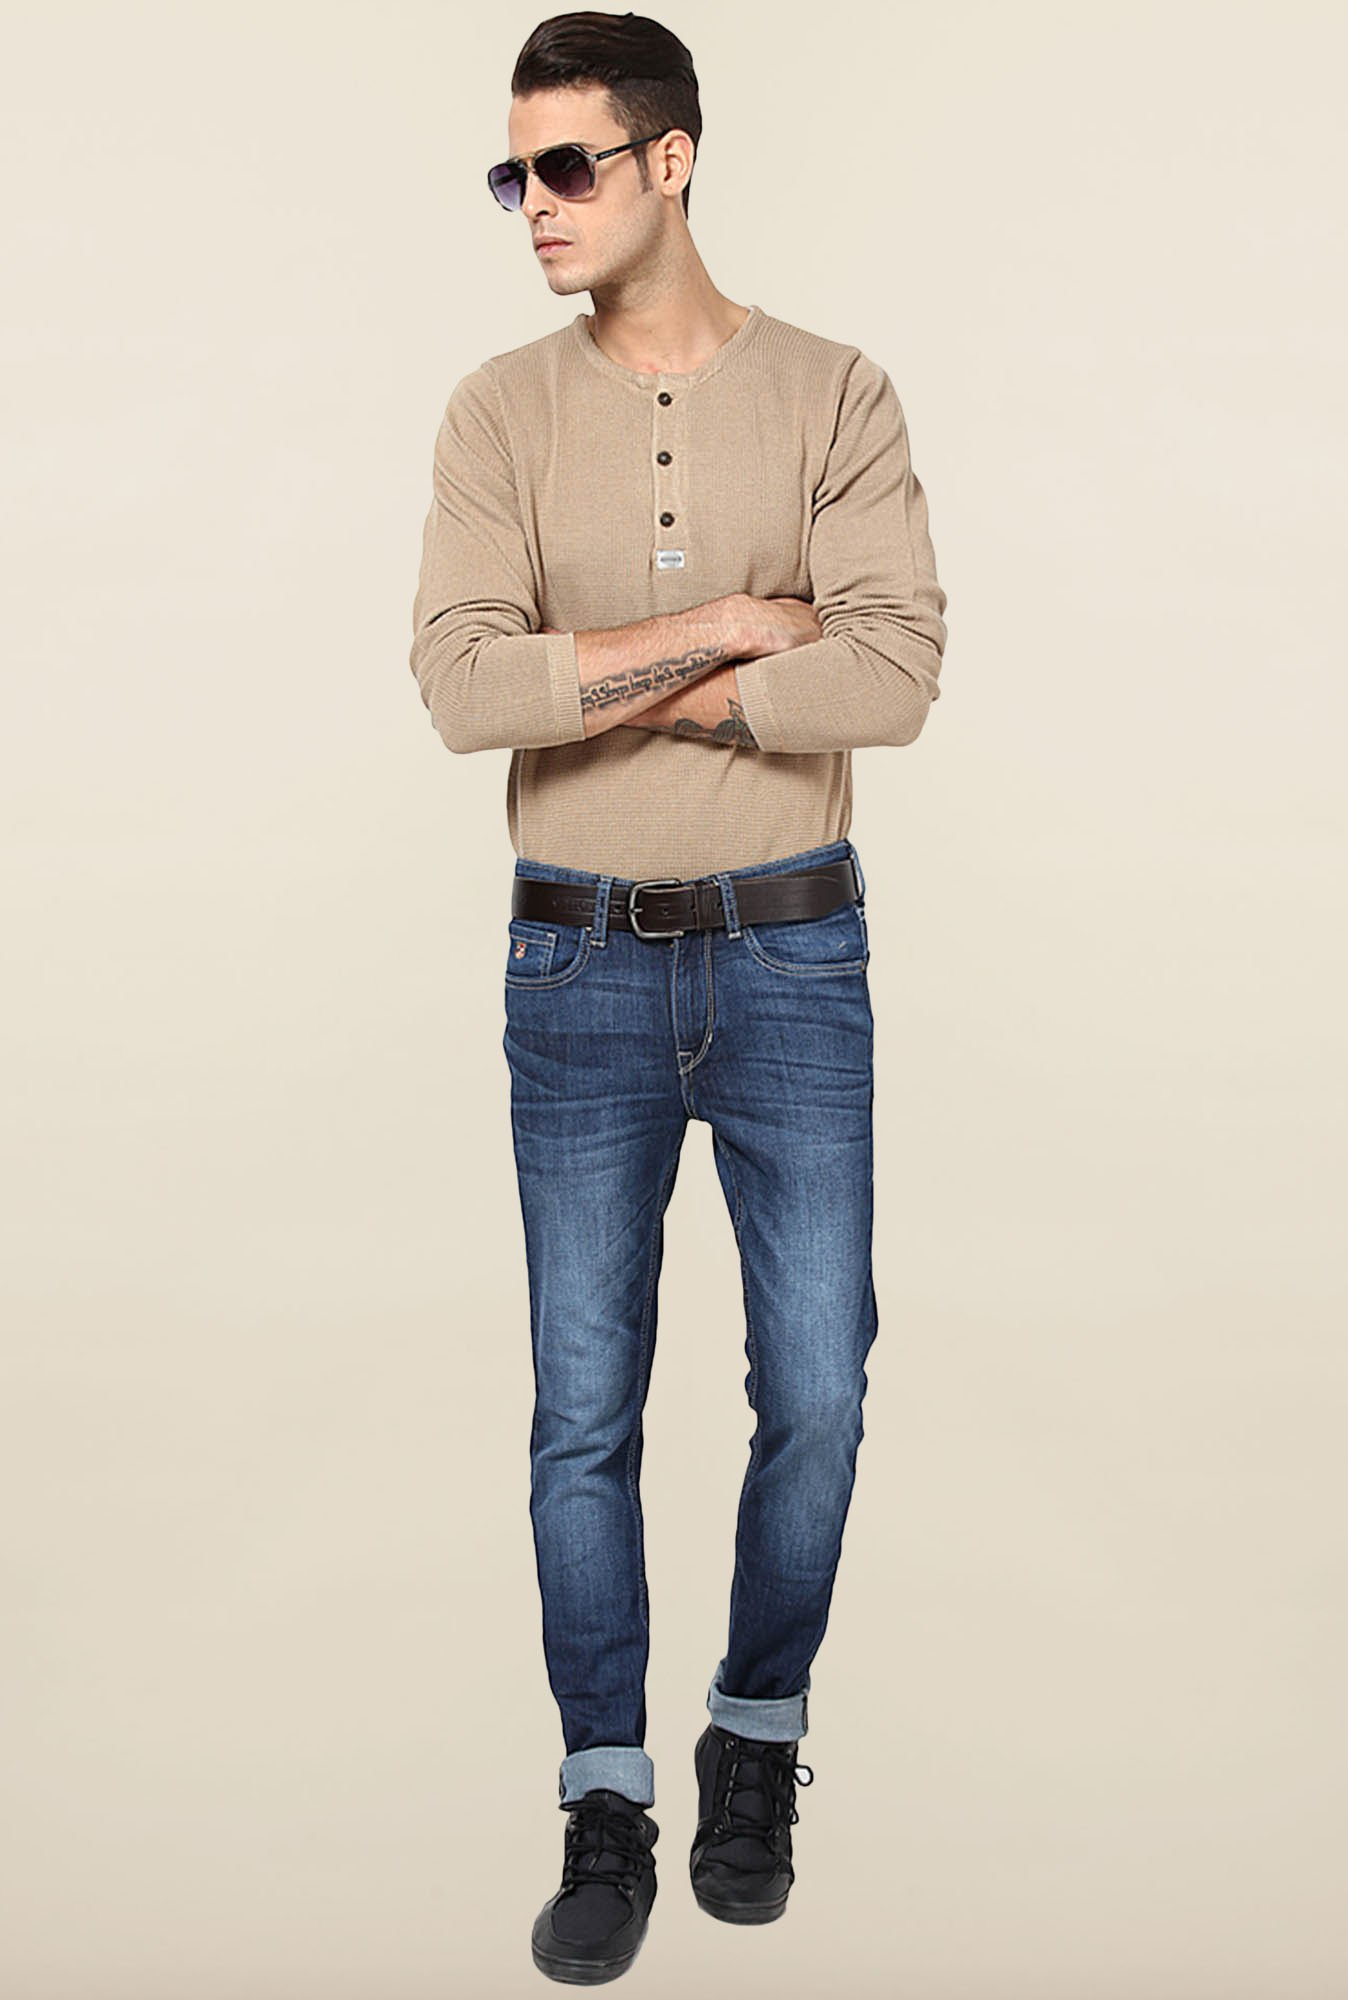 Jack & Jones Beige Solid Sweatshirt